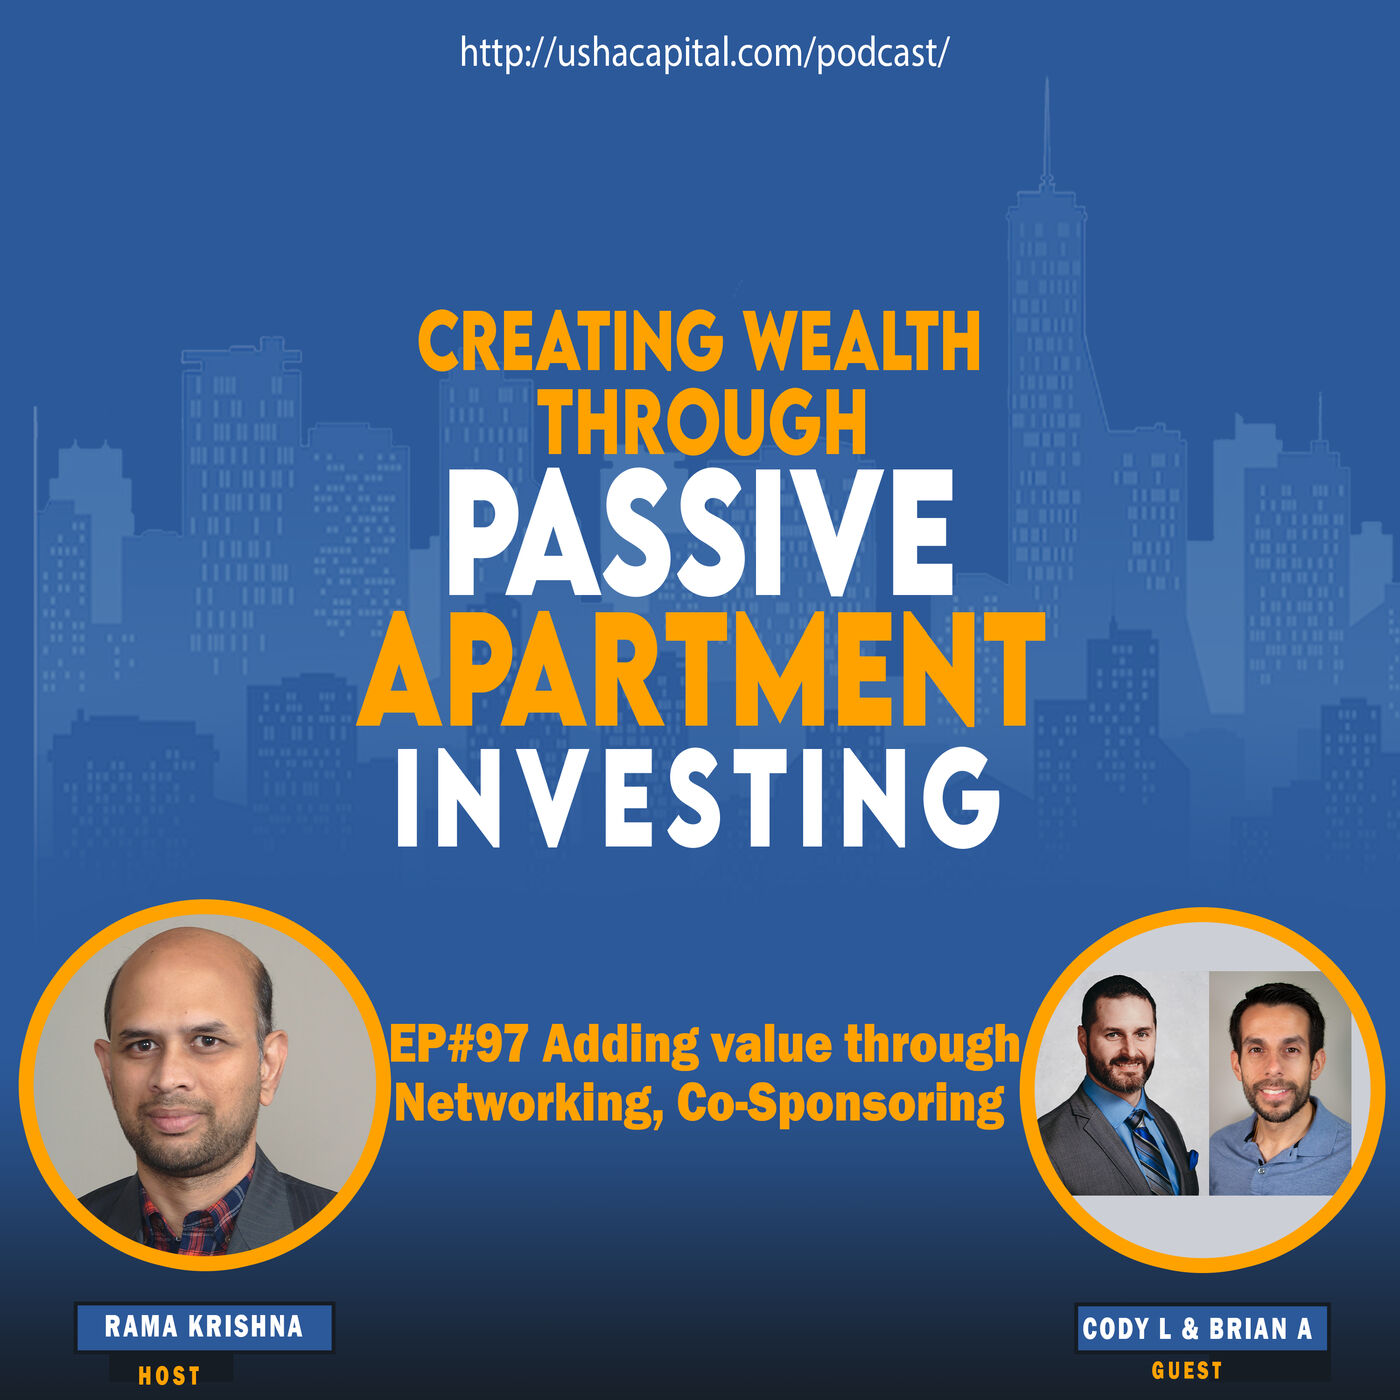 EP#97 Adding Value through Networking and Co-Sponsoring with Cody Laughlin and Brian Alfaro